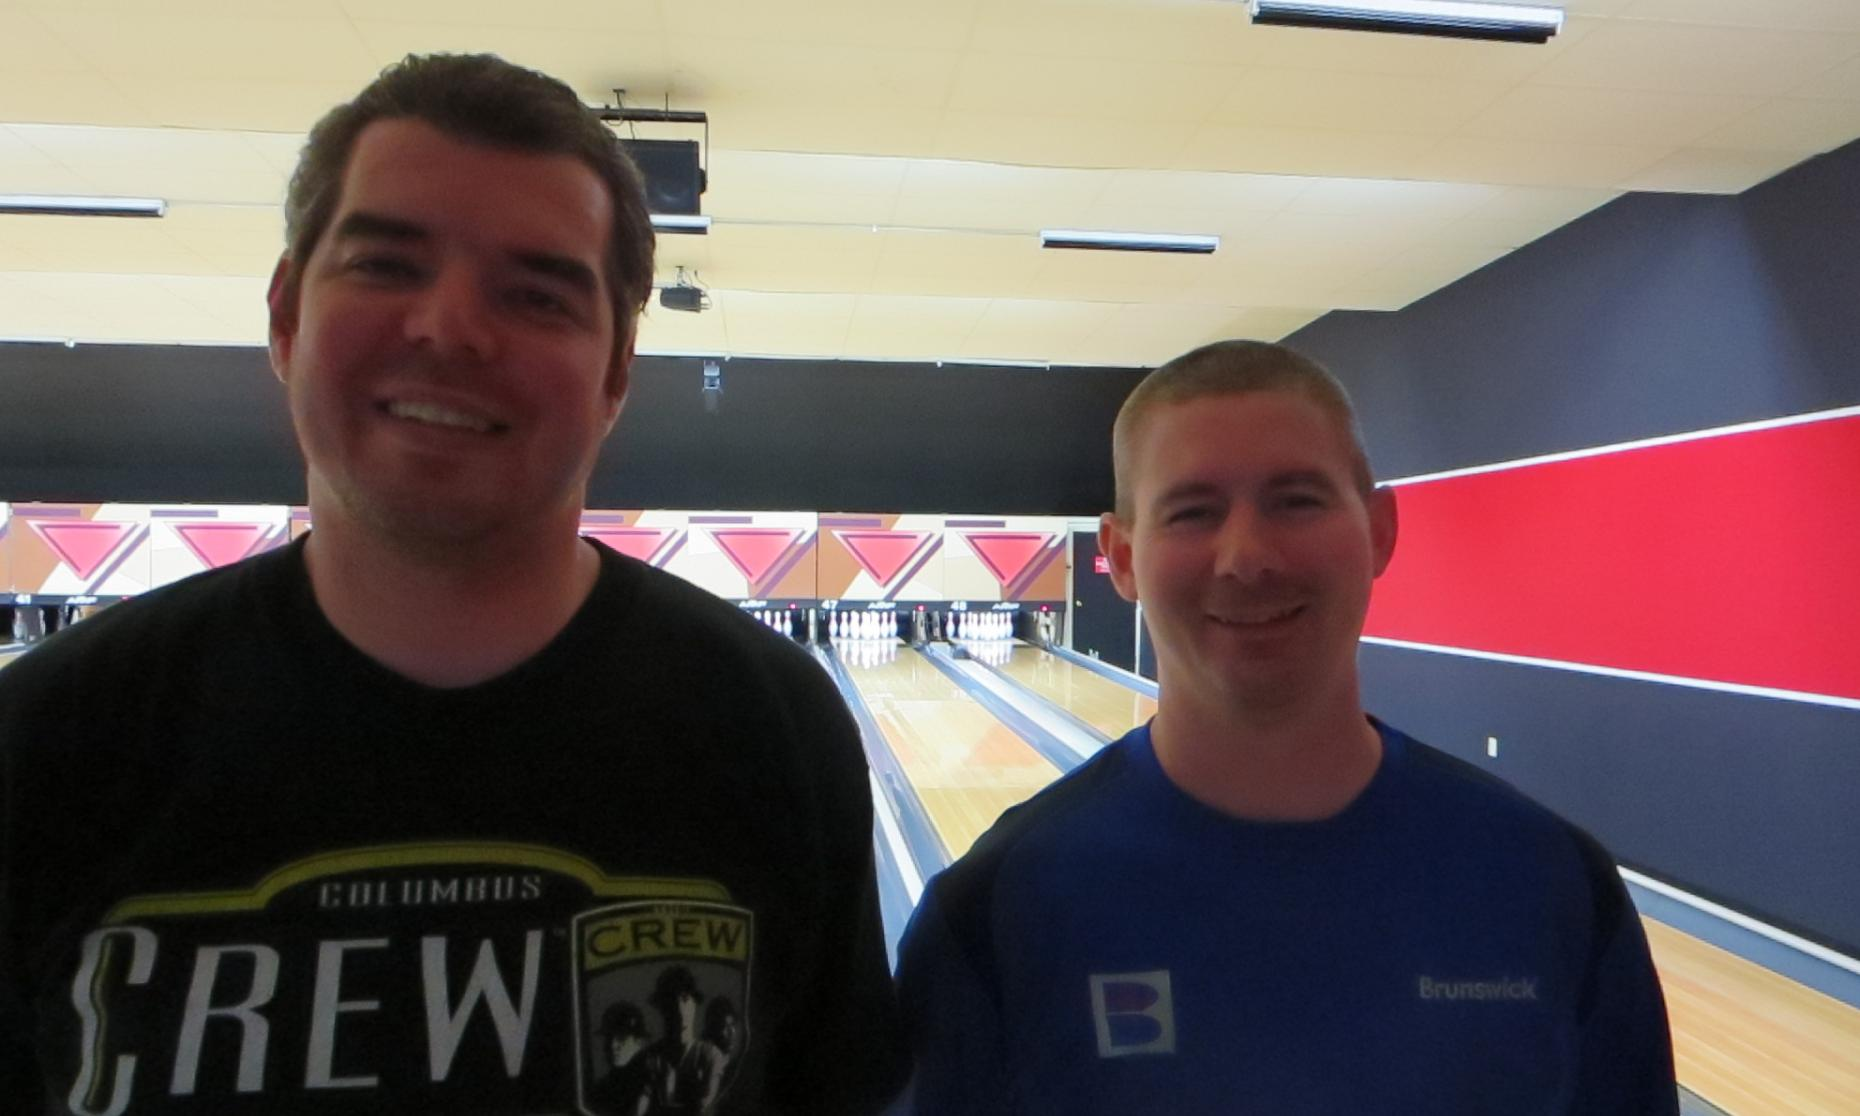 Runner up Mike Clark, Jr. and Champion Patrick Dombrowski